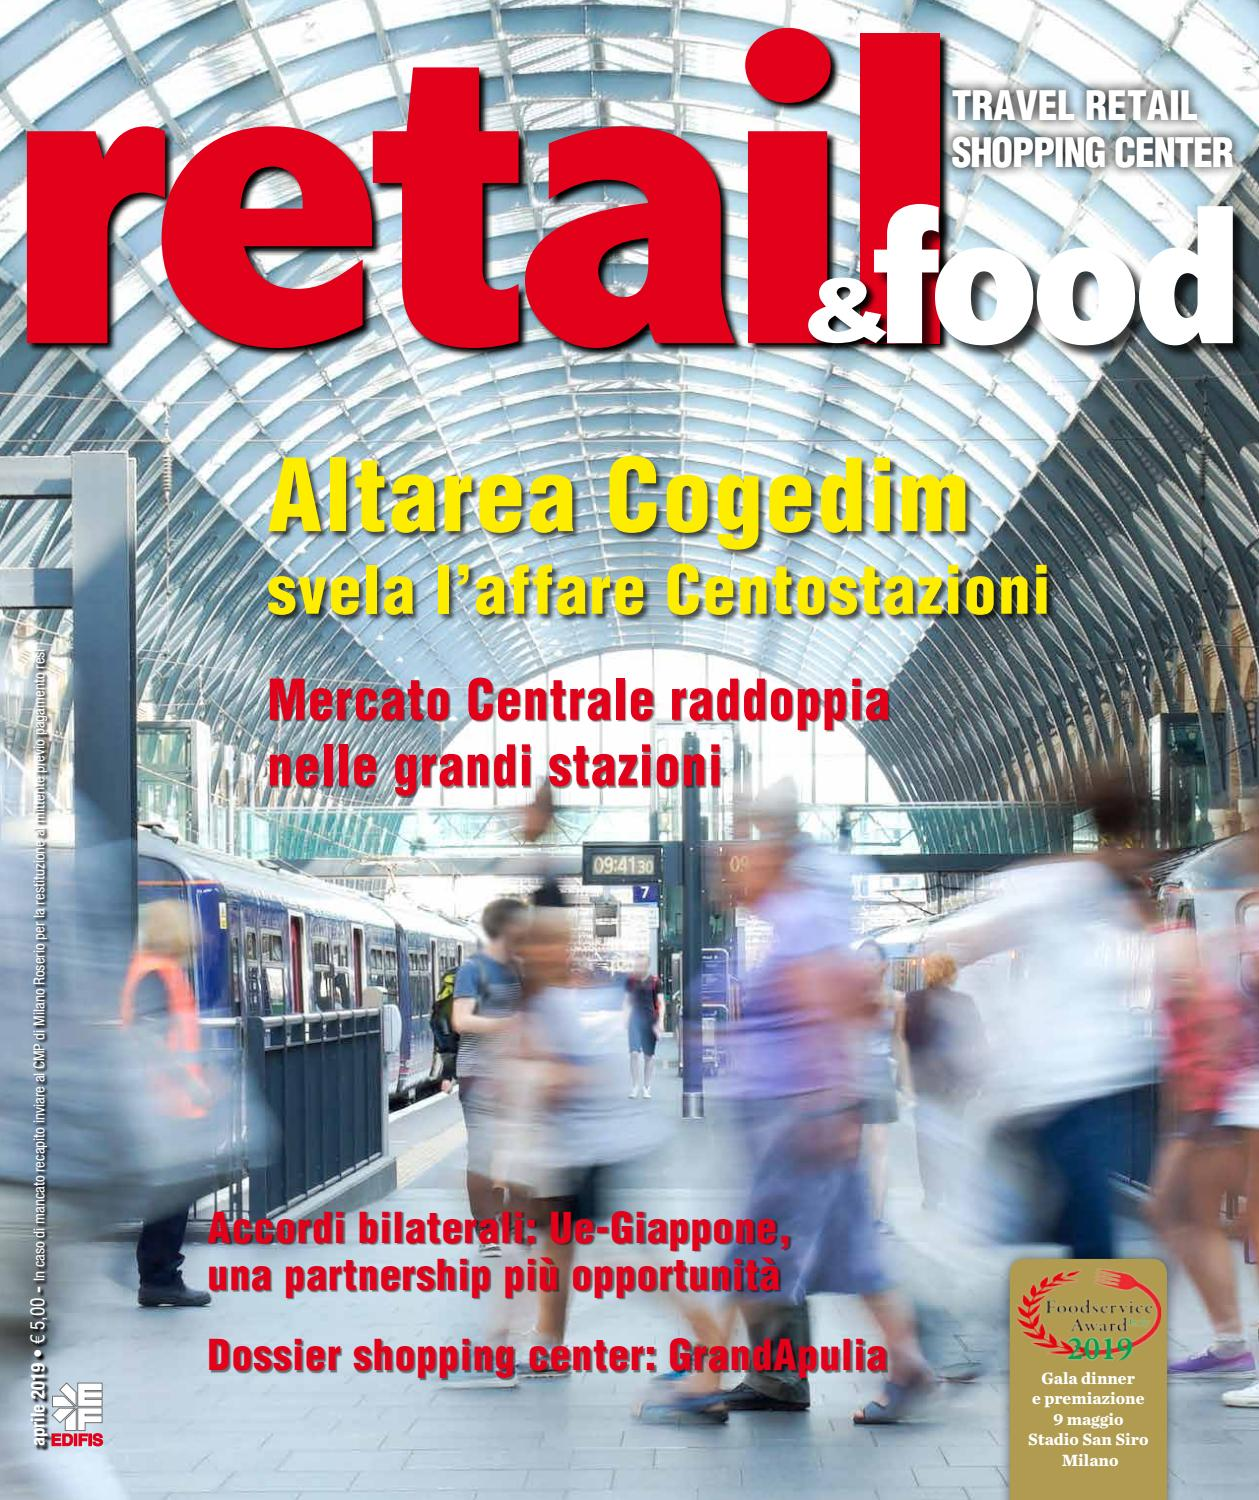 retail&food 04 2019 by Edifis issuu